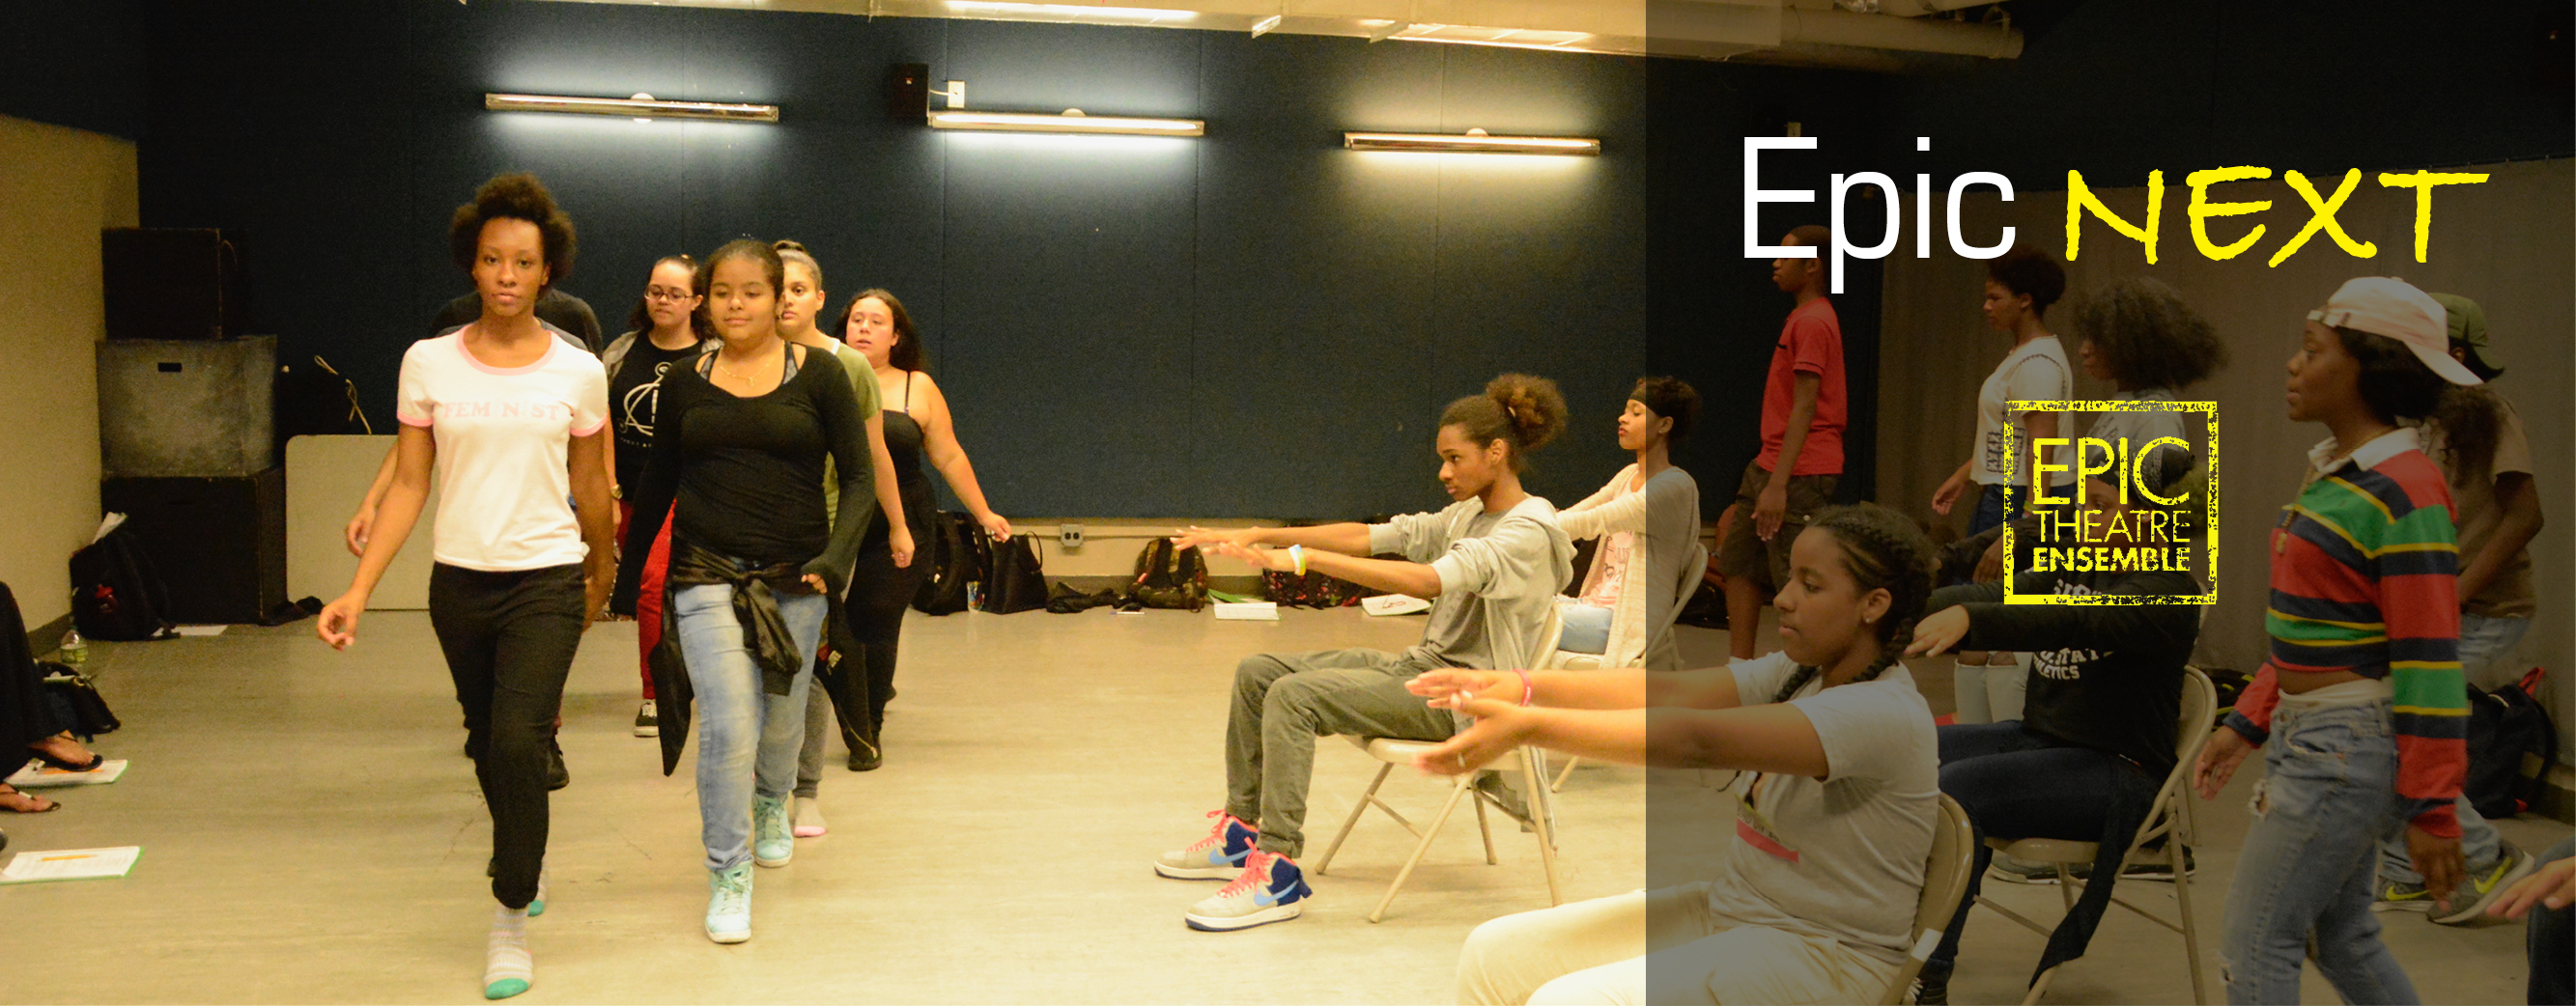 <p>In 2012, with the support of The Pierre and Tana Matisse Foundation, we began our most ambitious youth development program: Epic NEXT; Developing Young Thinkers, Actors &amp; Leaders. Through specifically-personalized pairings between artist-mentors and developing young artists, Epic NEXT utilizes a comprehensive, individualized approach to artistic and youth development. The Epic [&hellip;]</p>